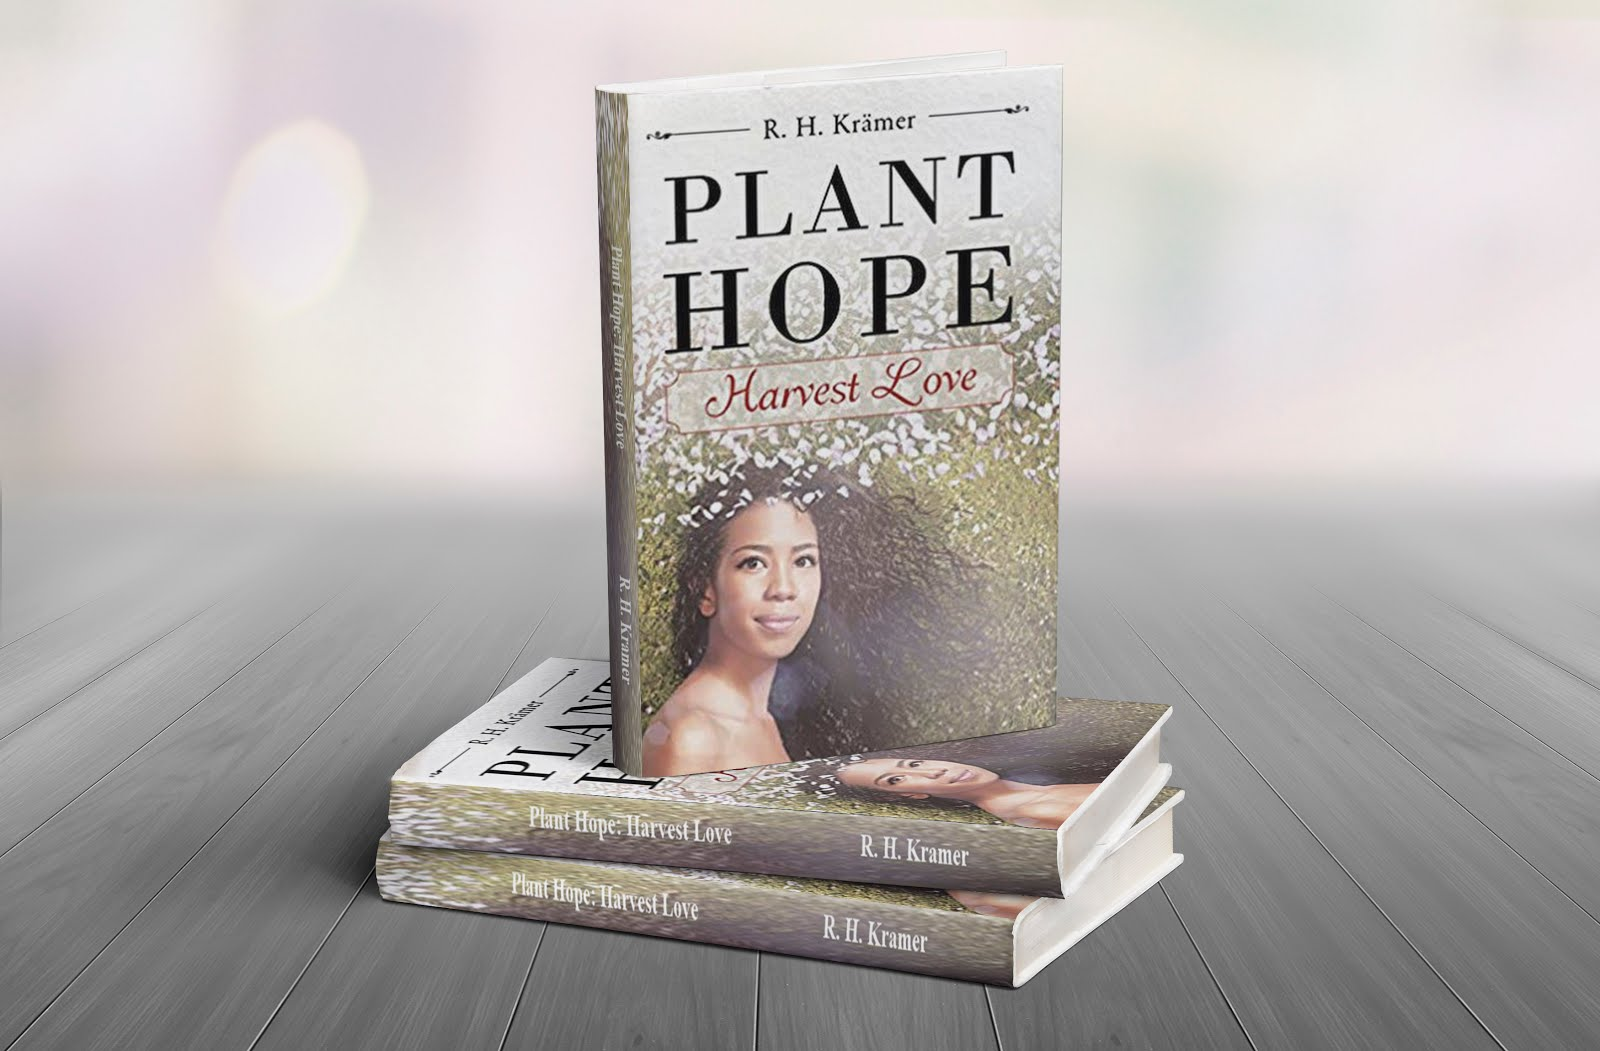 PLANT HOPE: HARVEST LOVE BY R H KRAMER